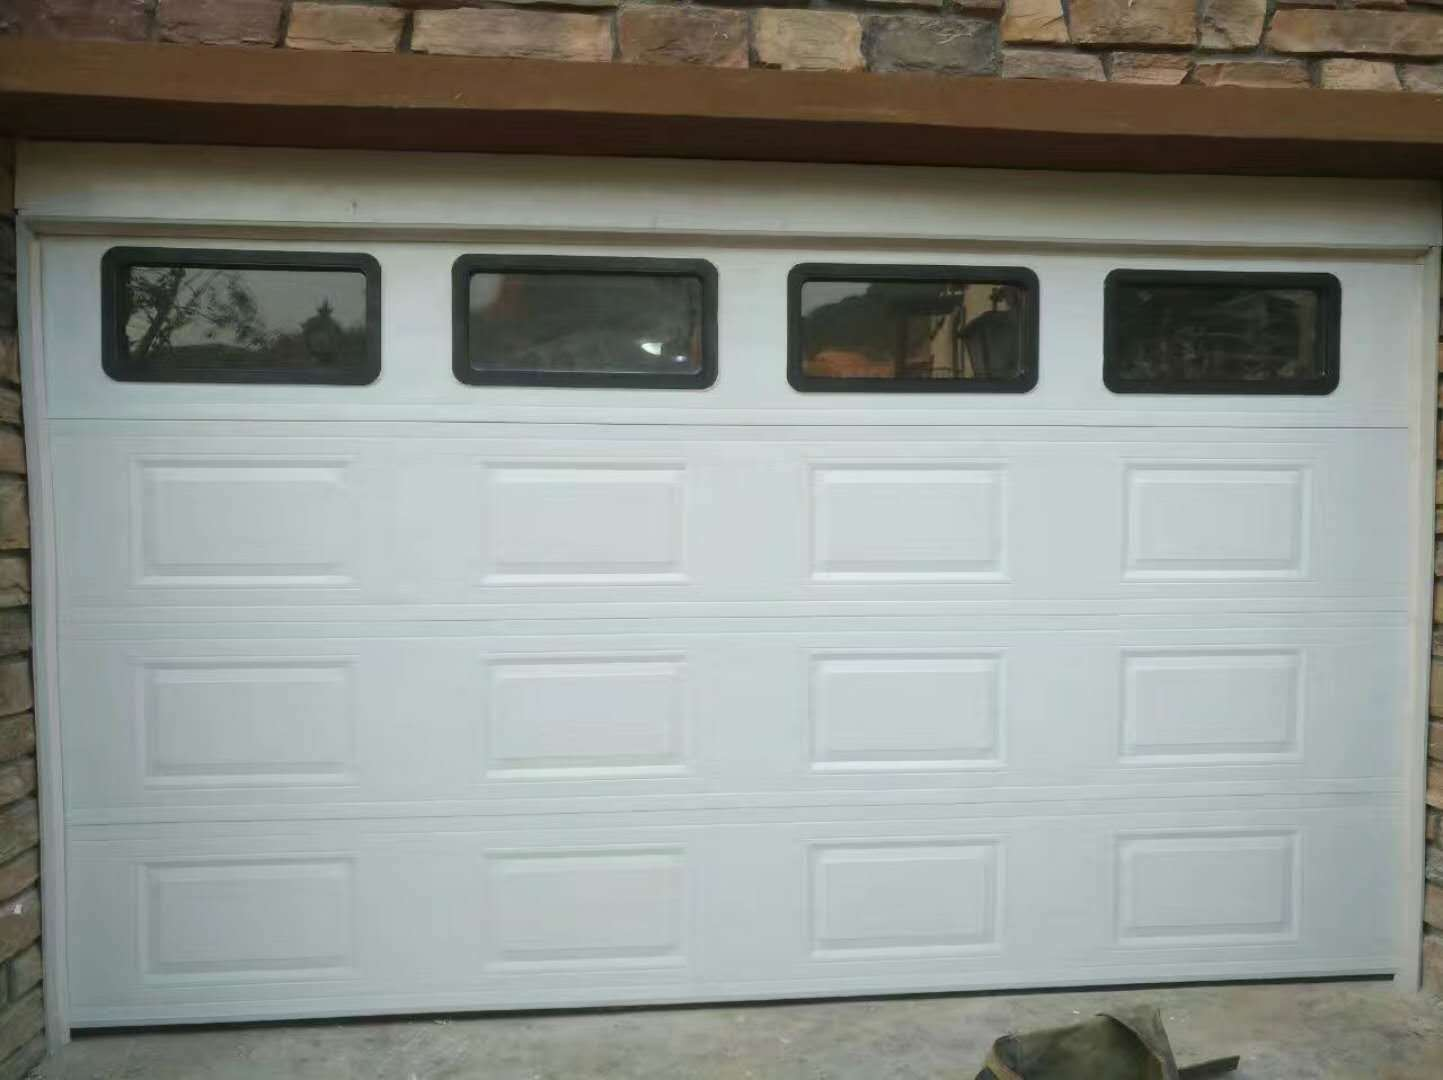 China Automatic Roller Garage Door With Remote Control In